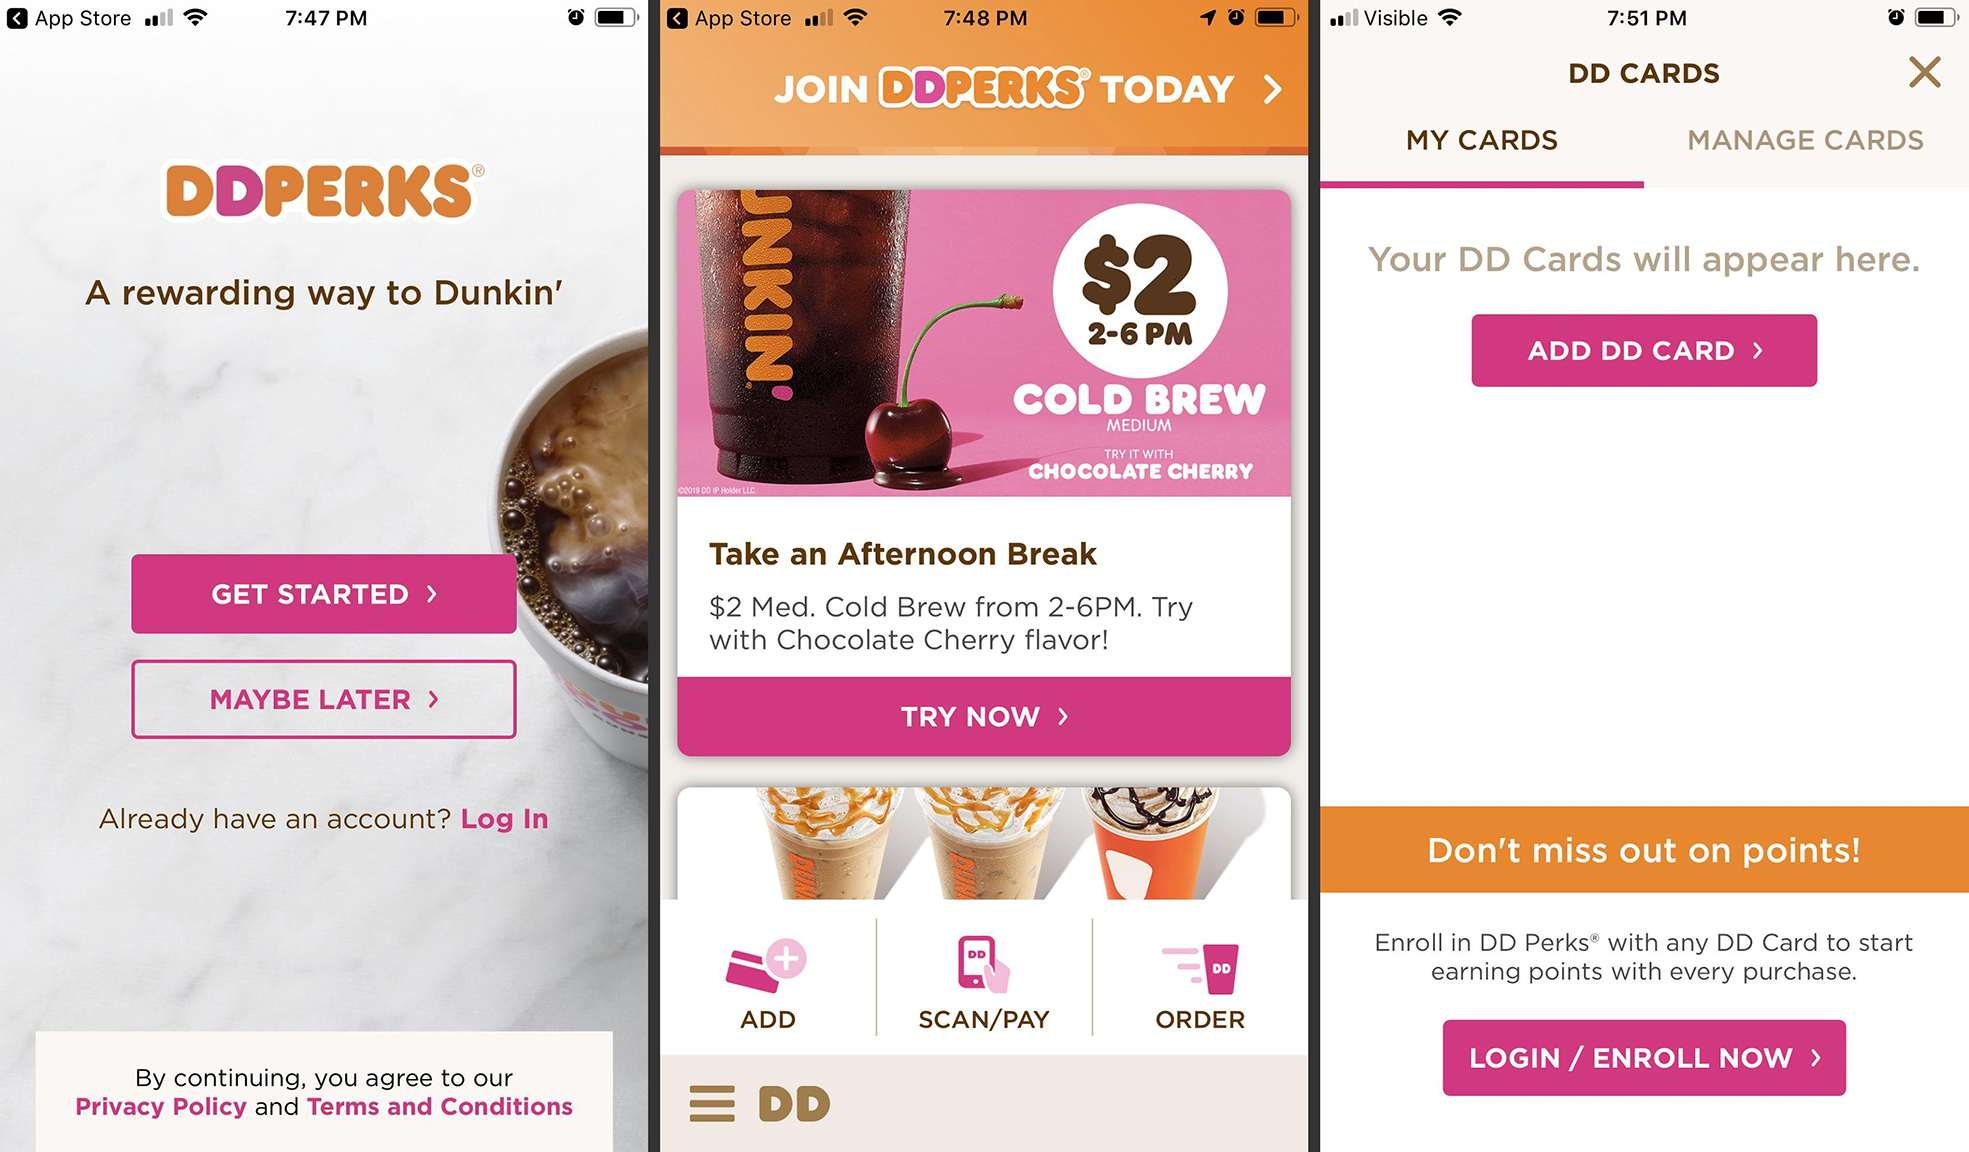 Dunkin Donuts app on Android